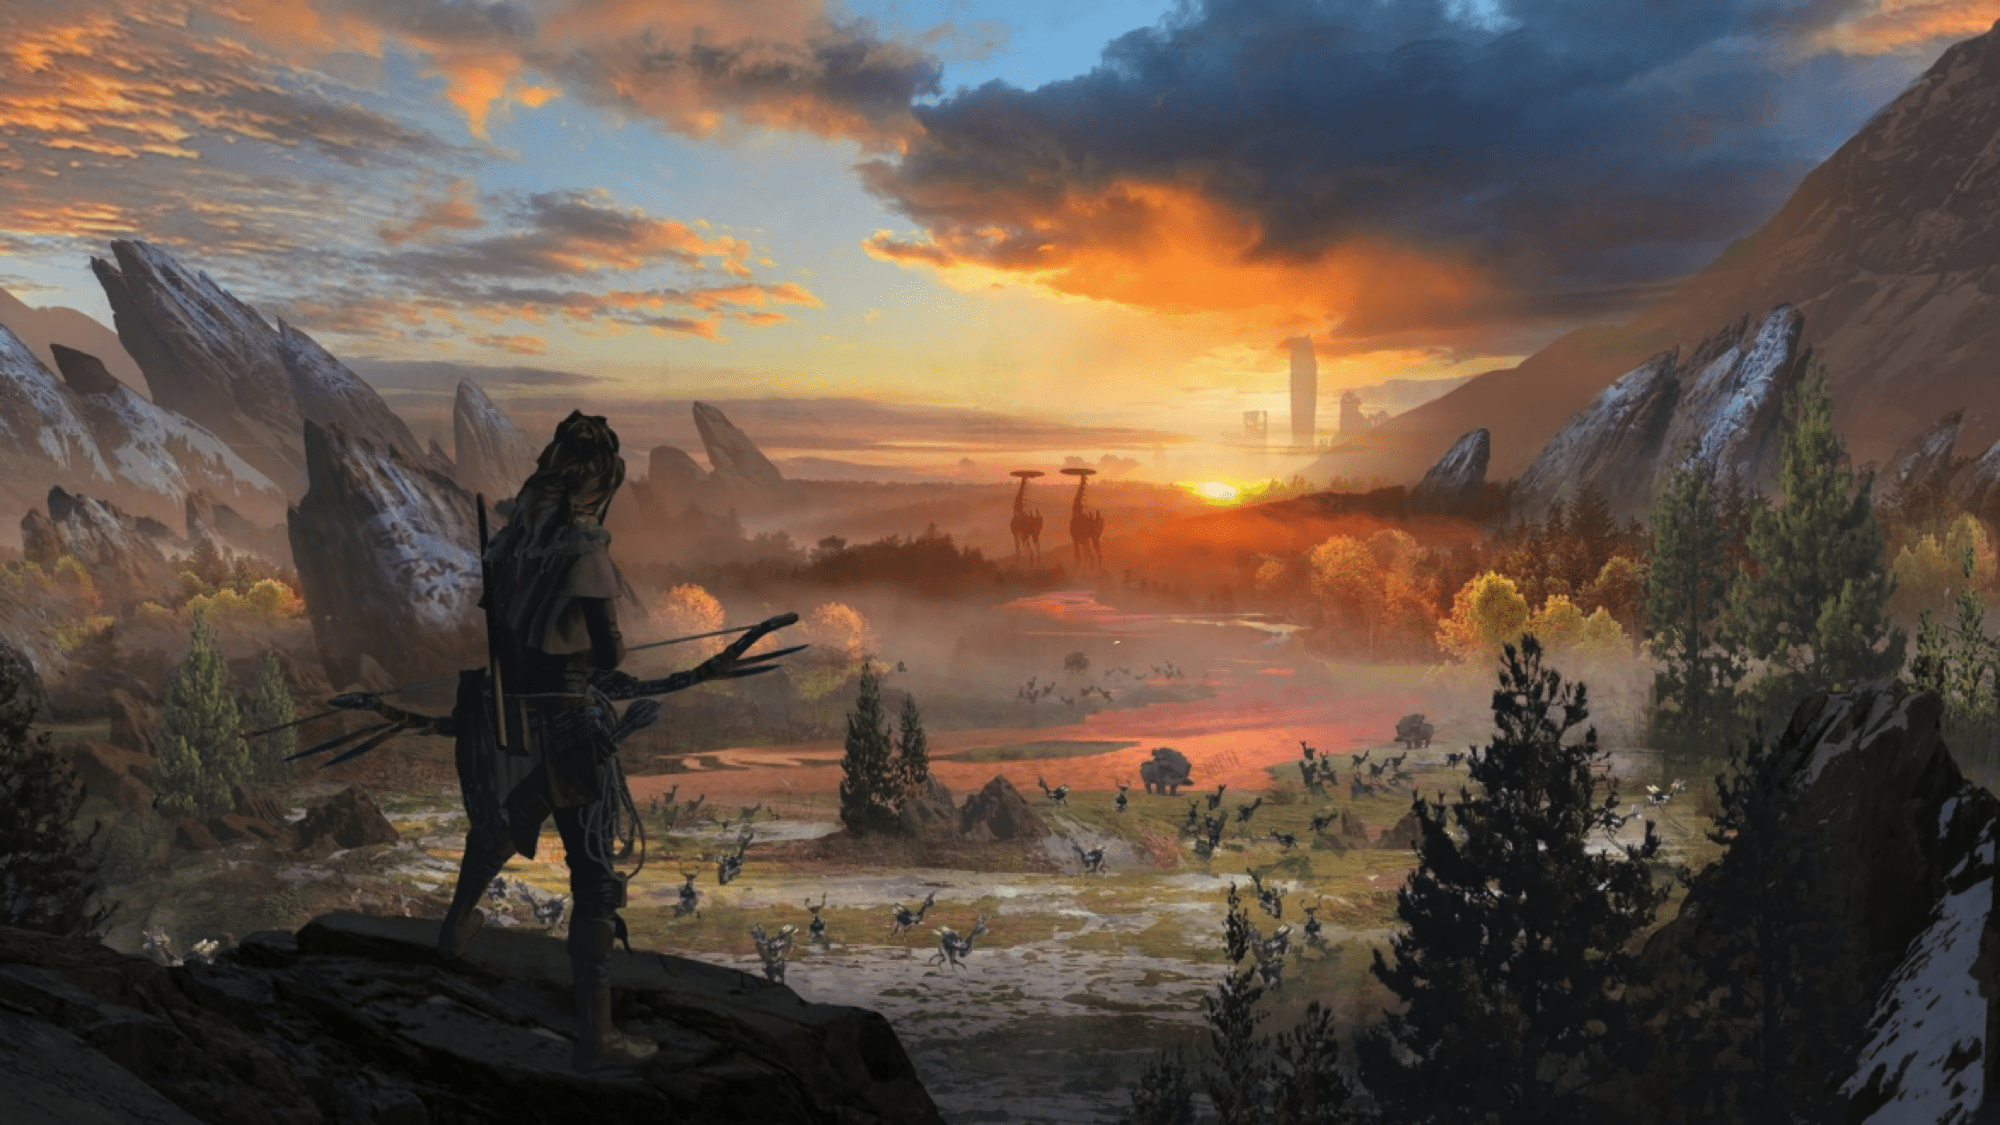 161 Horizon Zero Dawn HD Wallpapers   Background Images   Wallpaper     HD Wallpaper   Background Image ID 728598